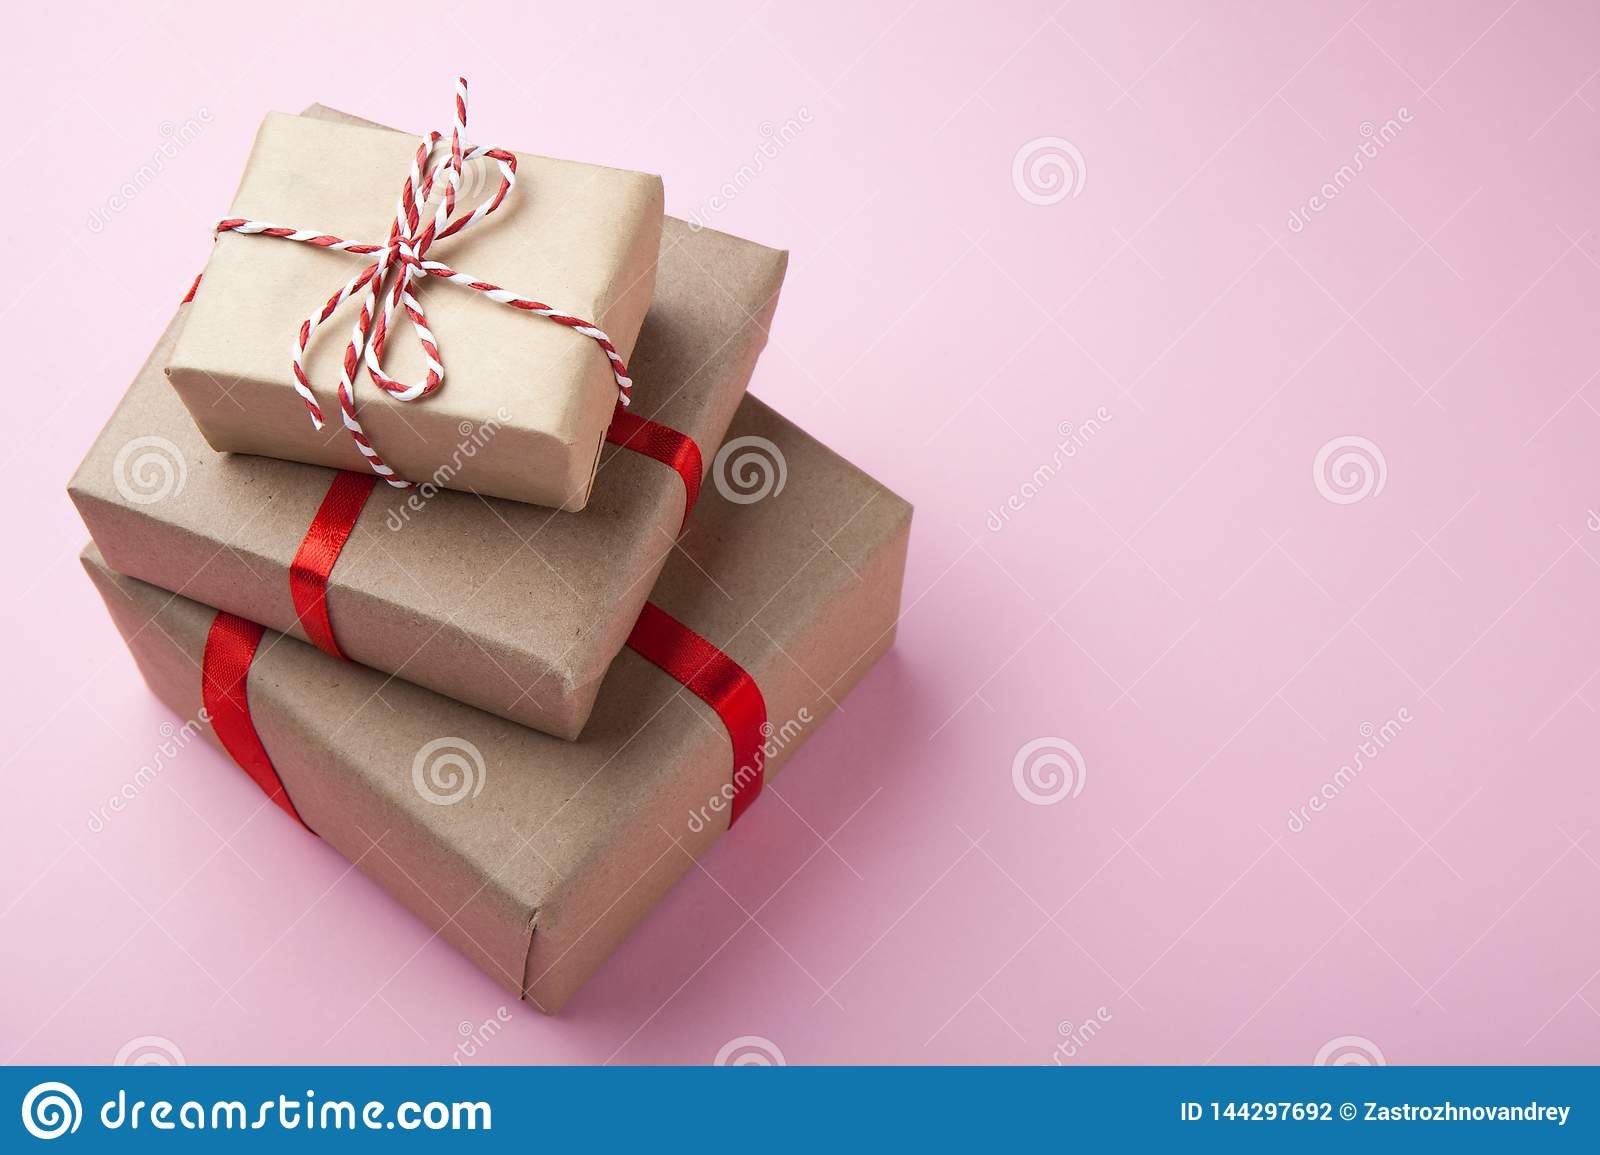 Gifts in a beautiful and elegant package on a pink background. View from above